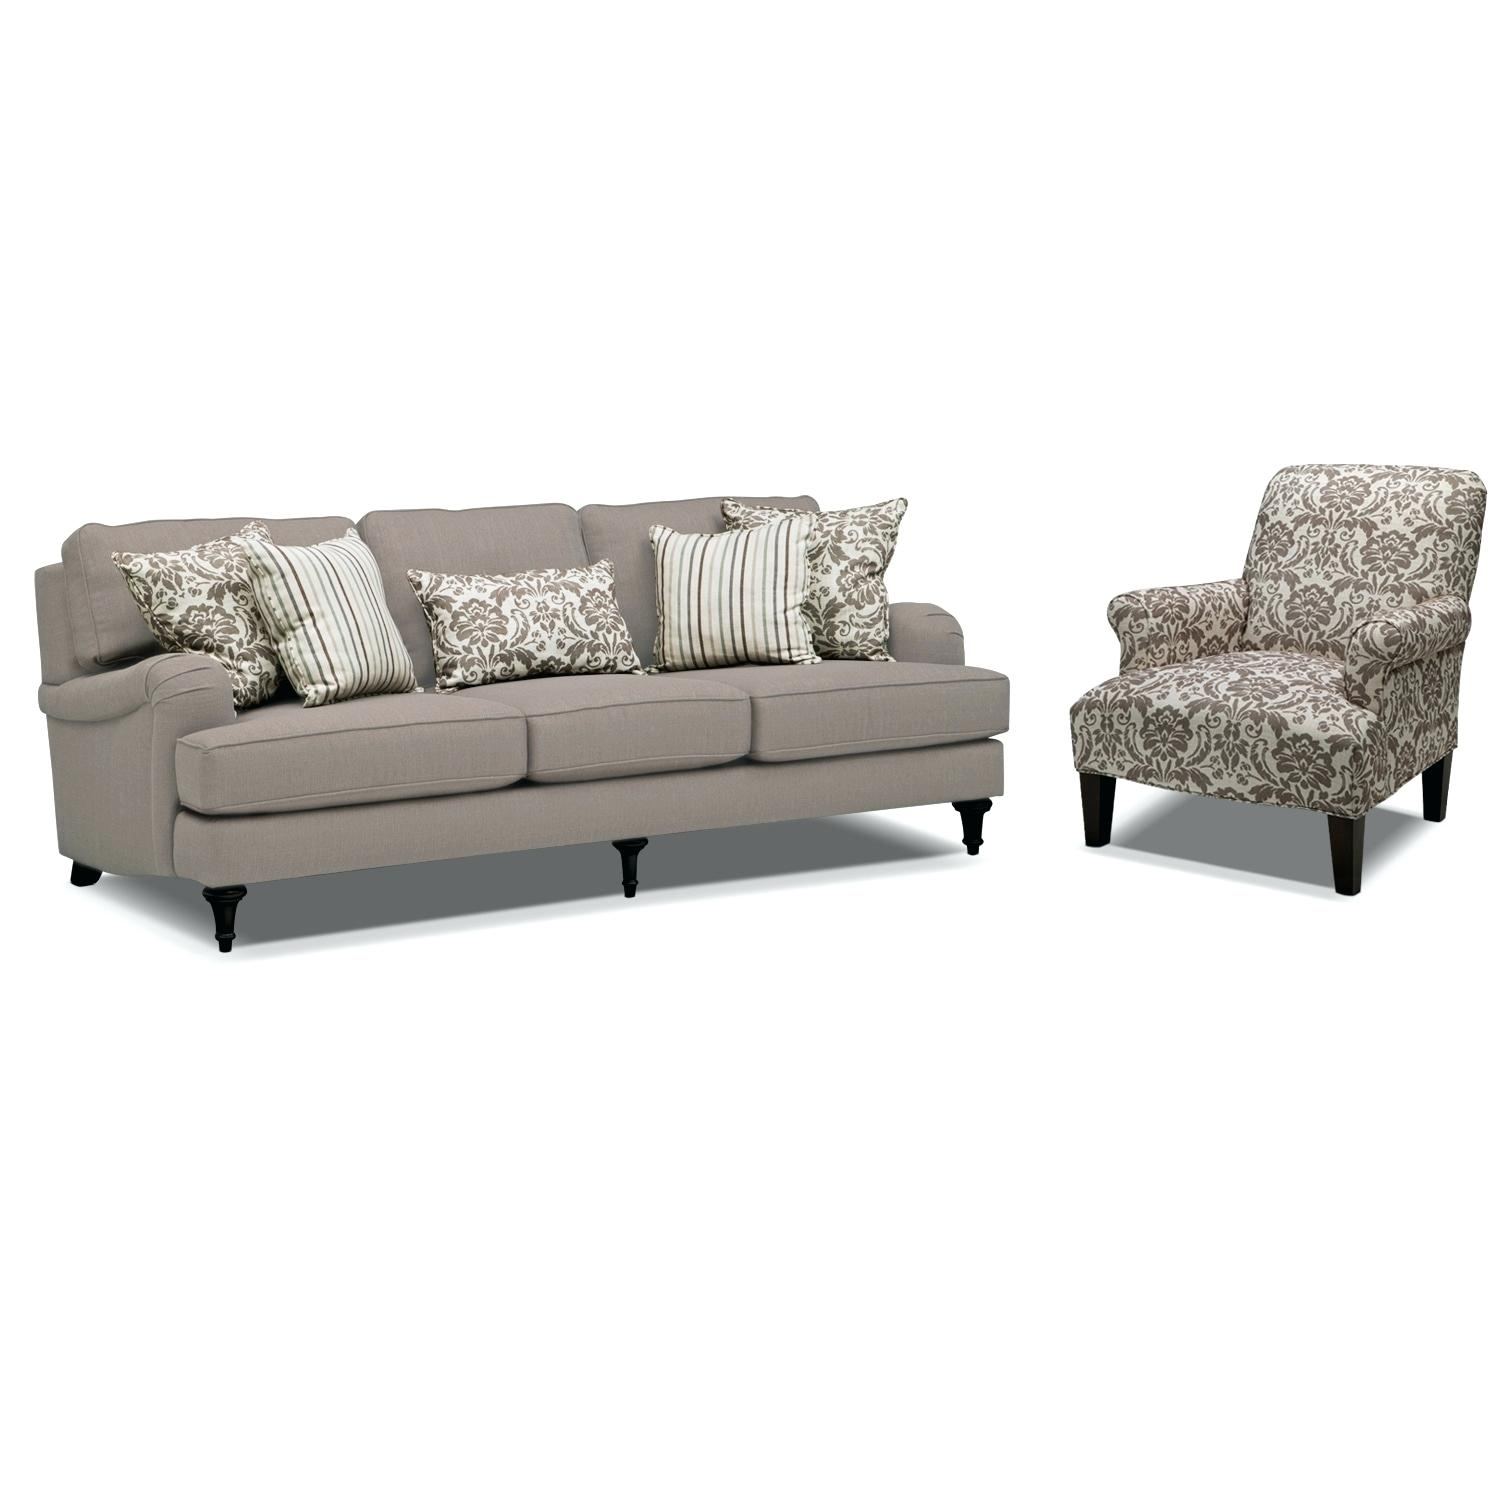 decoration living room furniture sofa and accent chair set gray with table chest drawers cupboard country quilted runners cocktail end sets trestle style outdoor rattan chairs